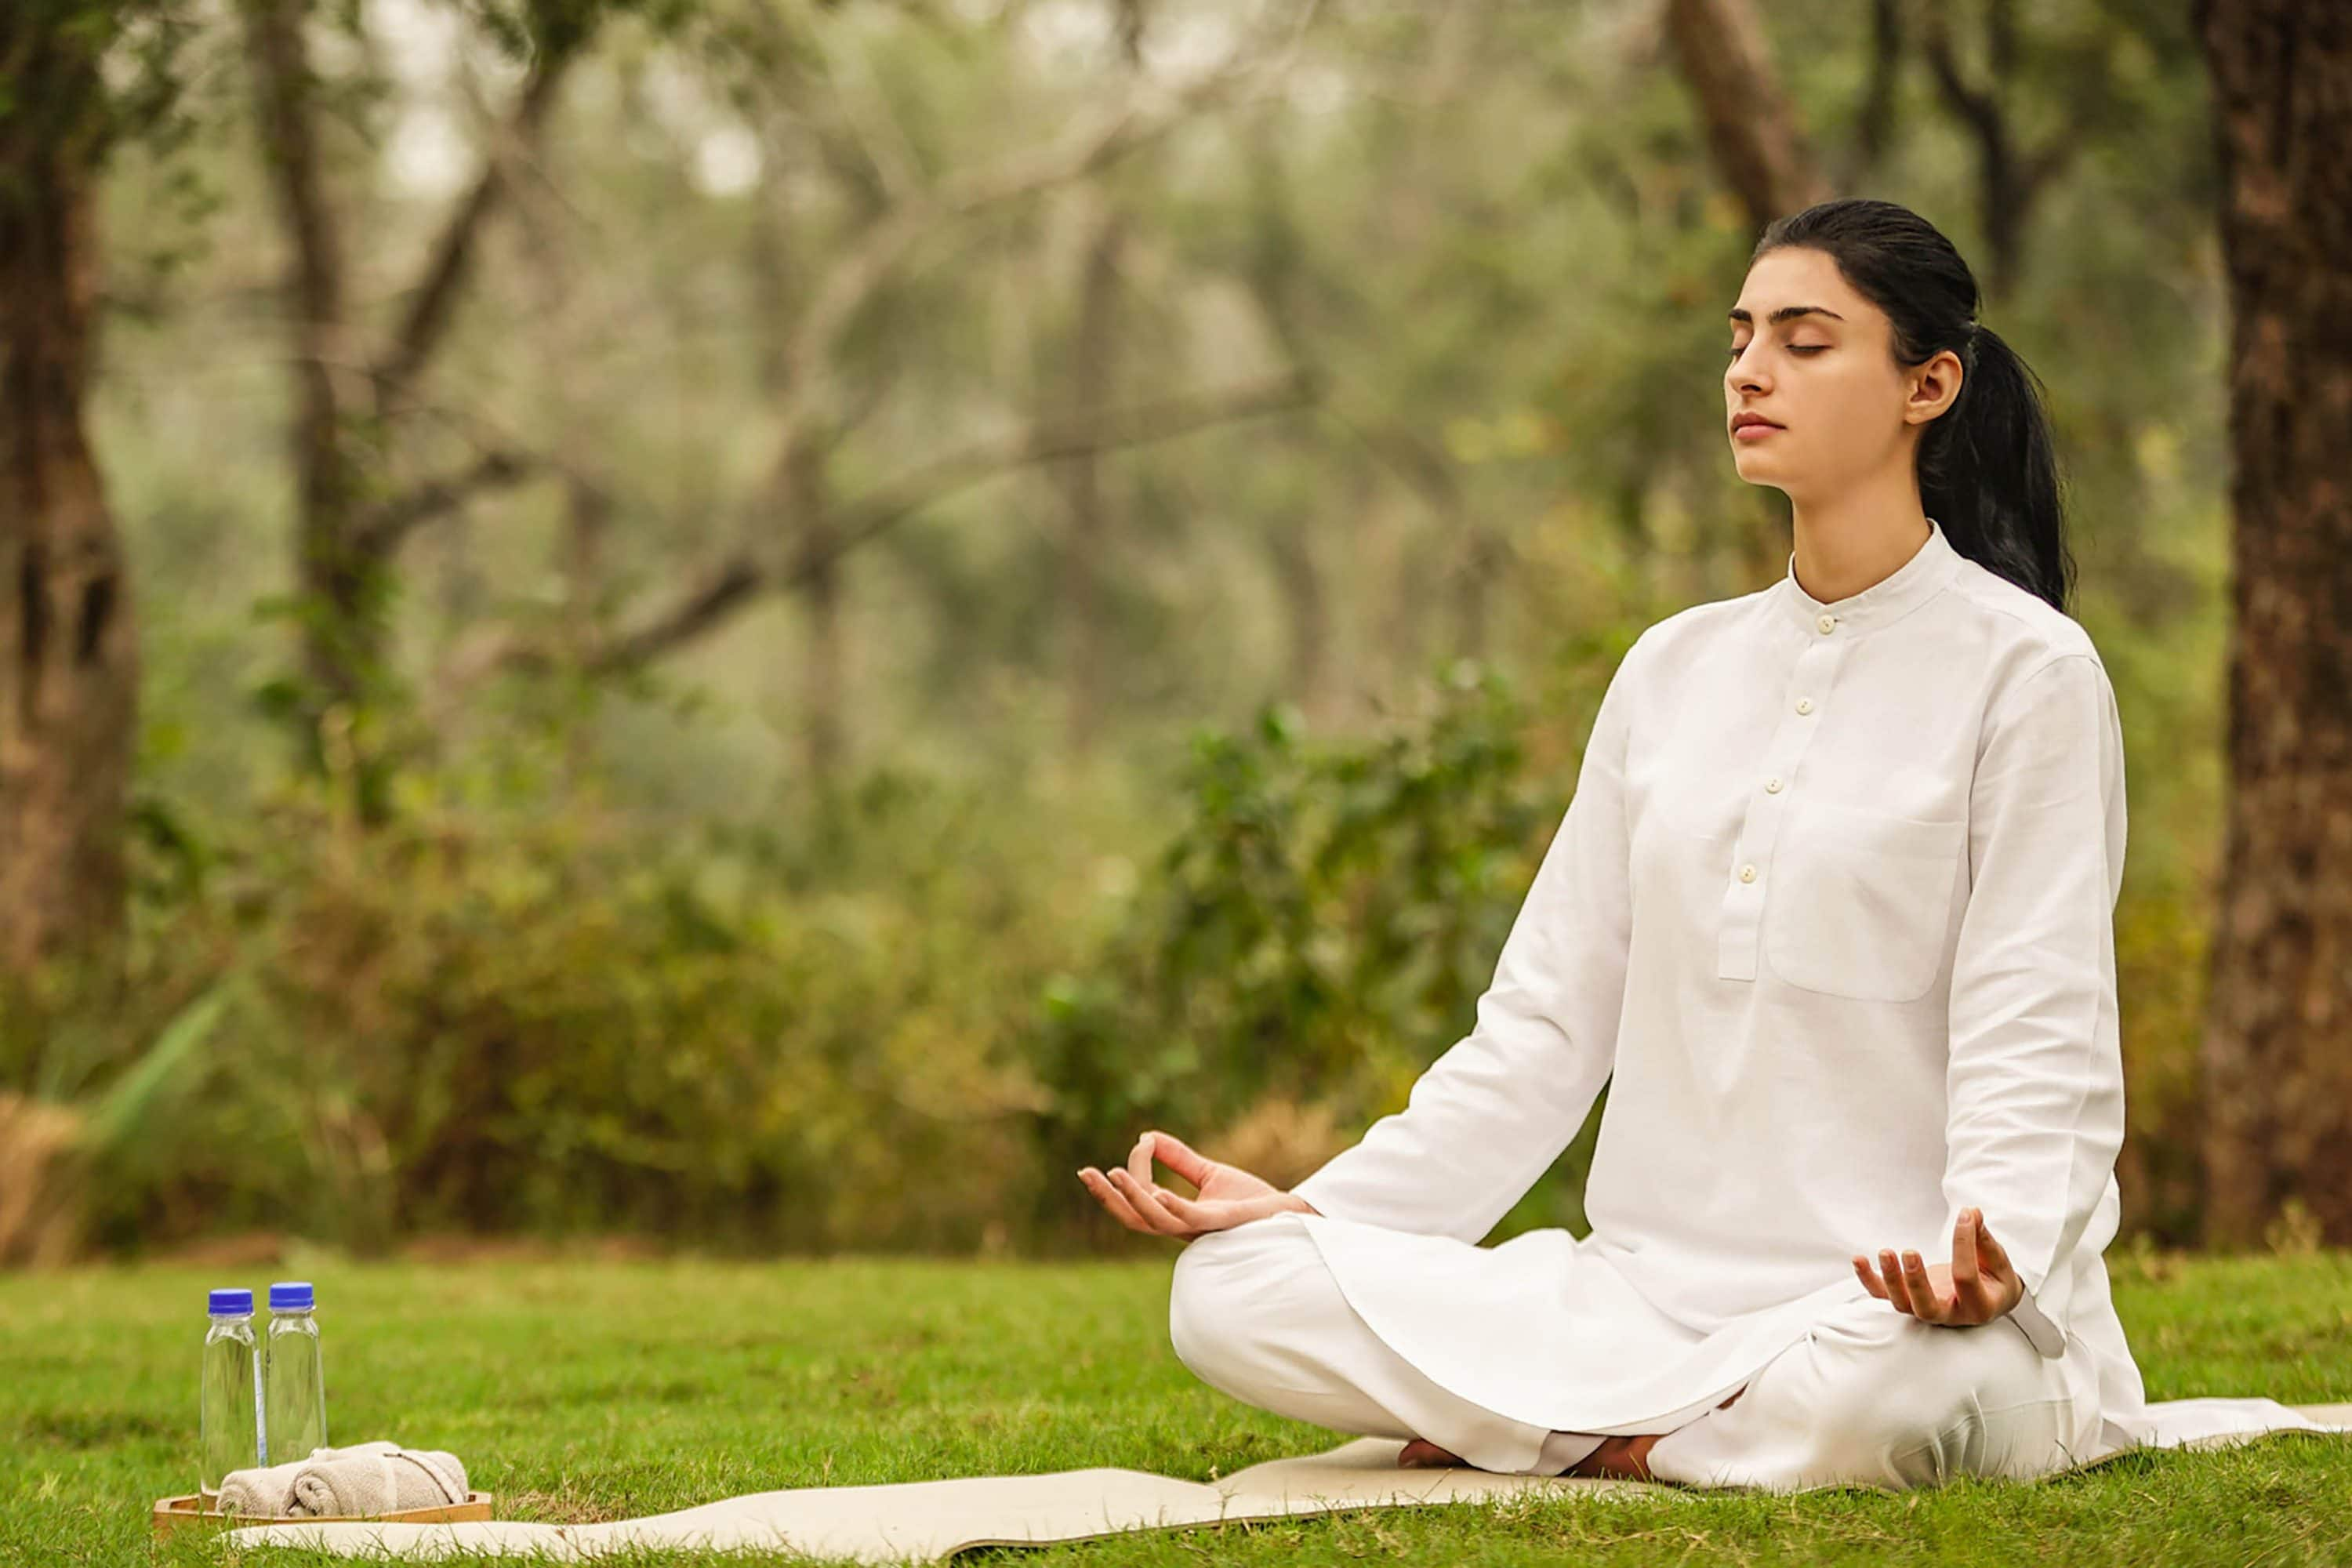 Woman practises meditation outdoors